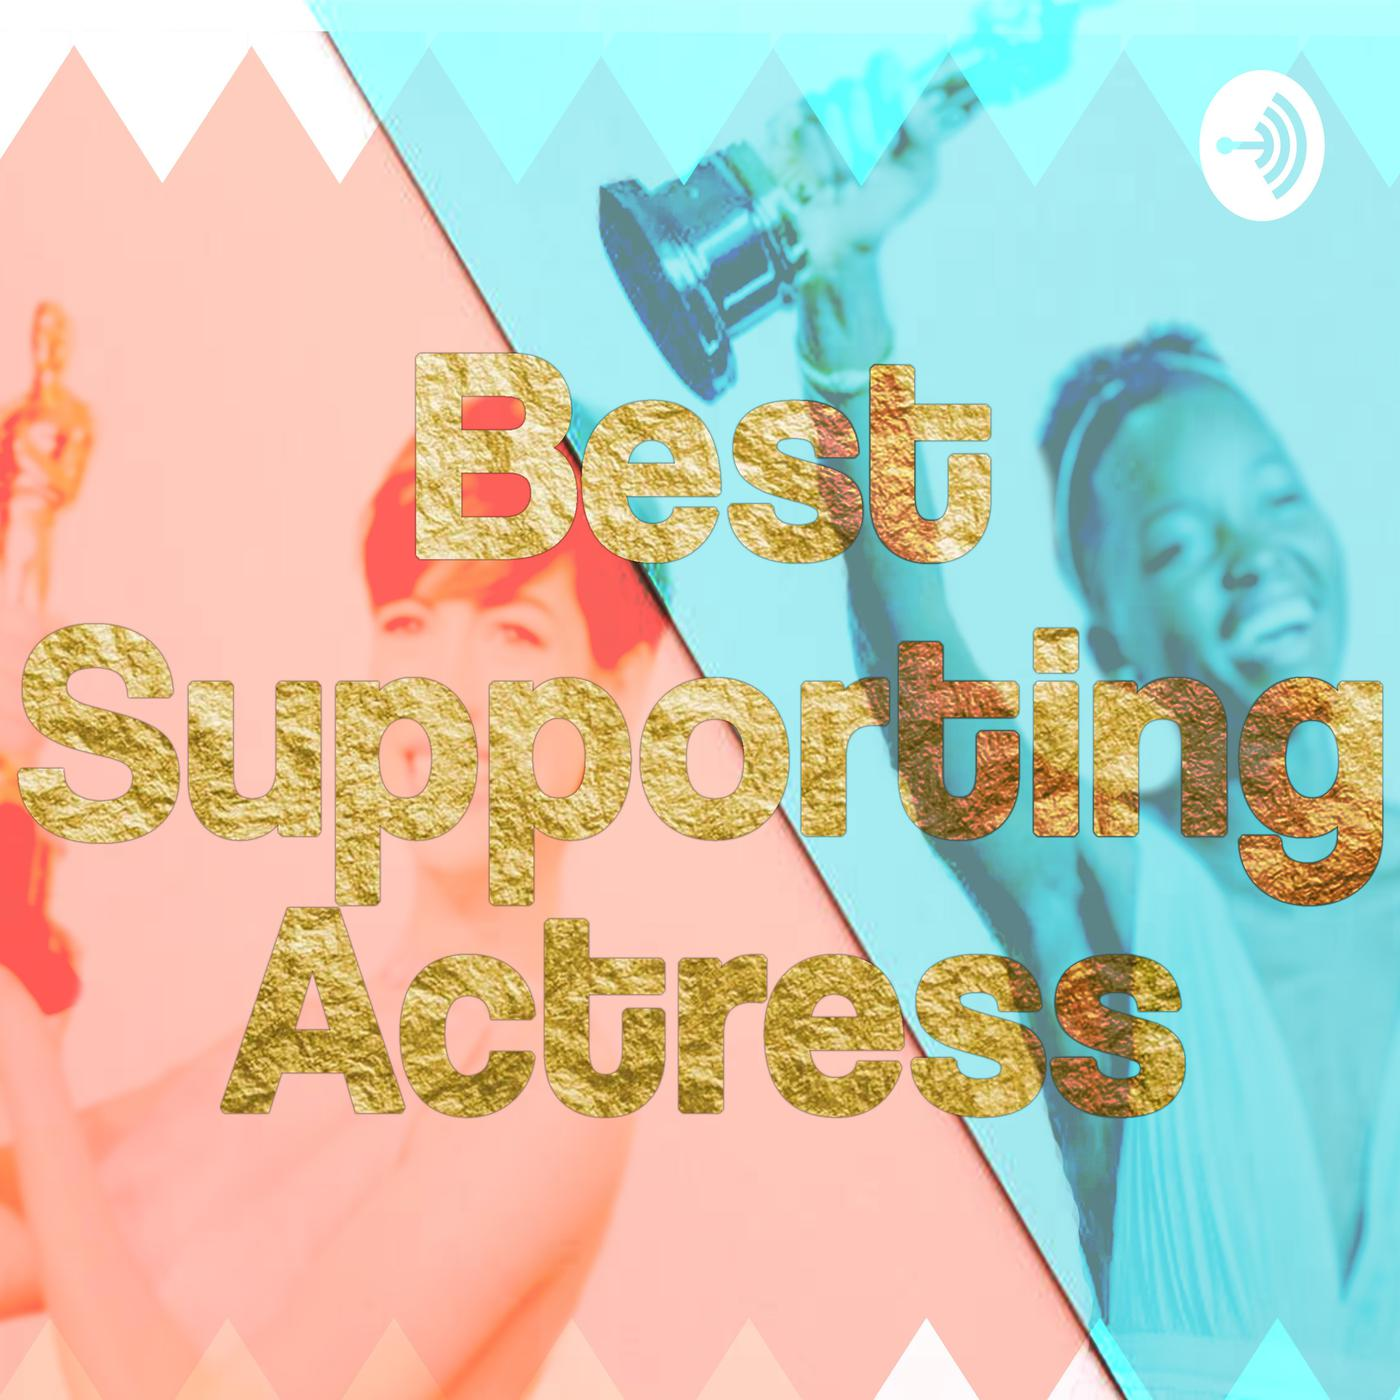 Best Supporting Actress (podcast) - Best Supporting Actress | Listen